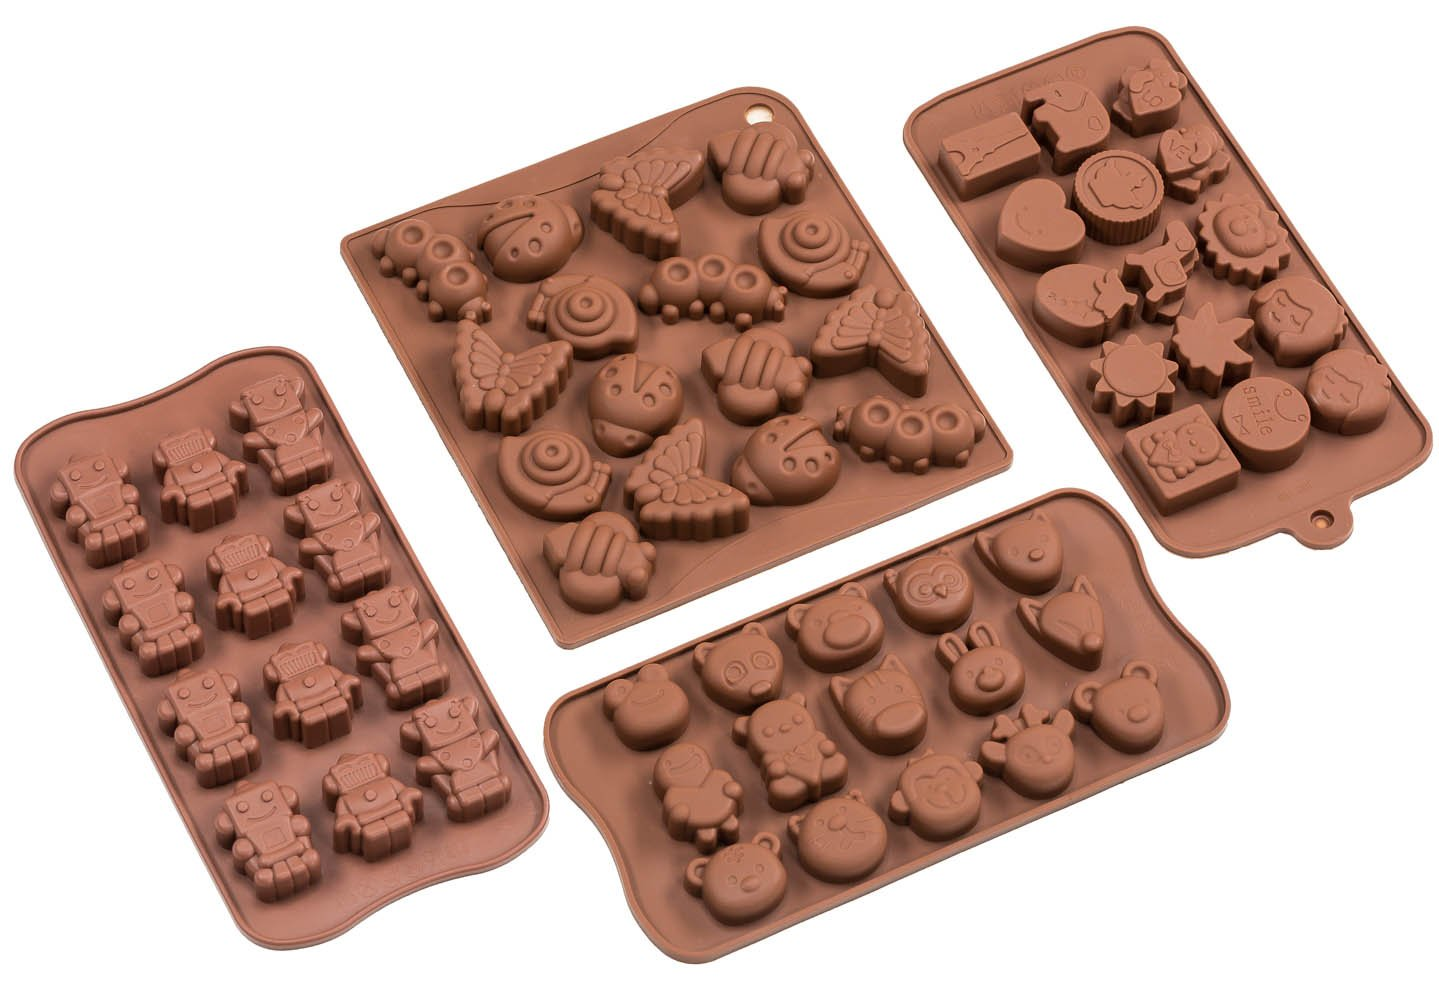 Amazon.com: Sorbus Cartoon Shaped Silicone Molds for Chocolate ...